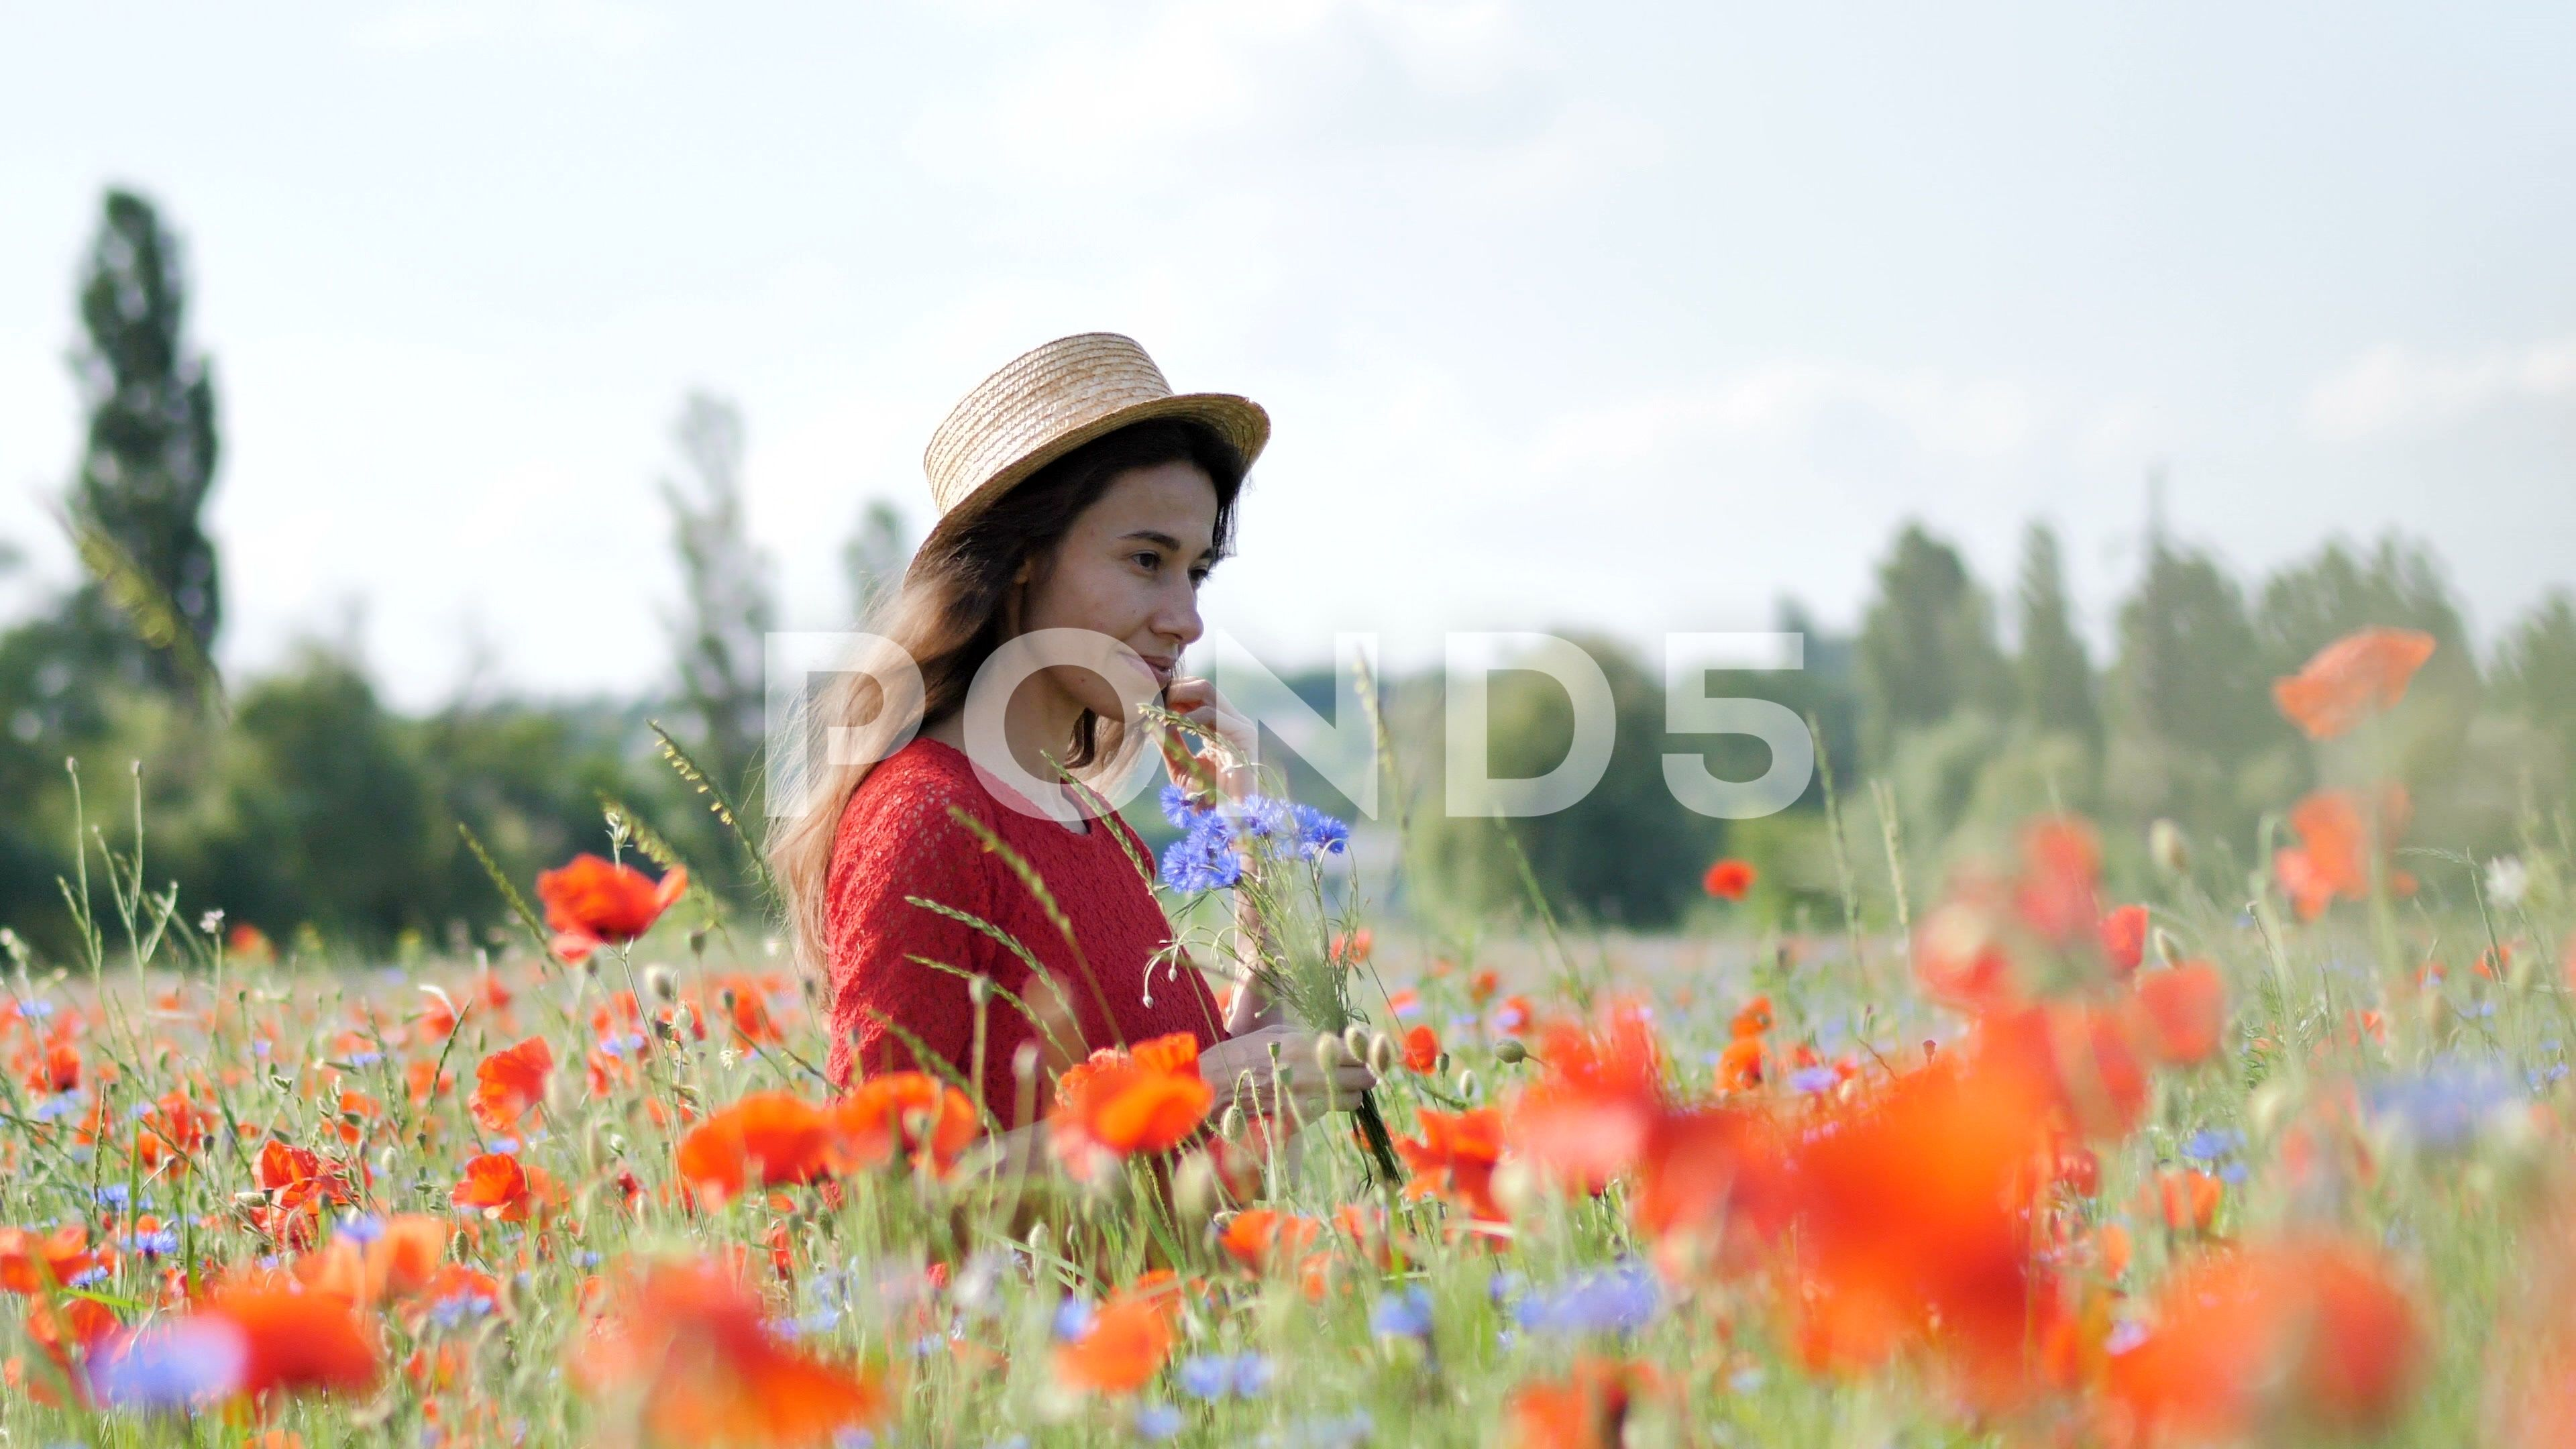 Free Happy Woman In Red Dress Enjoying Nature Beauty Girl Outdoor Walks On A Stock Footage Ad Red Dress Enjoying Fr Beauty Girl Happy Women Red Dress Women